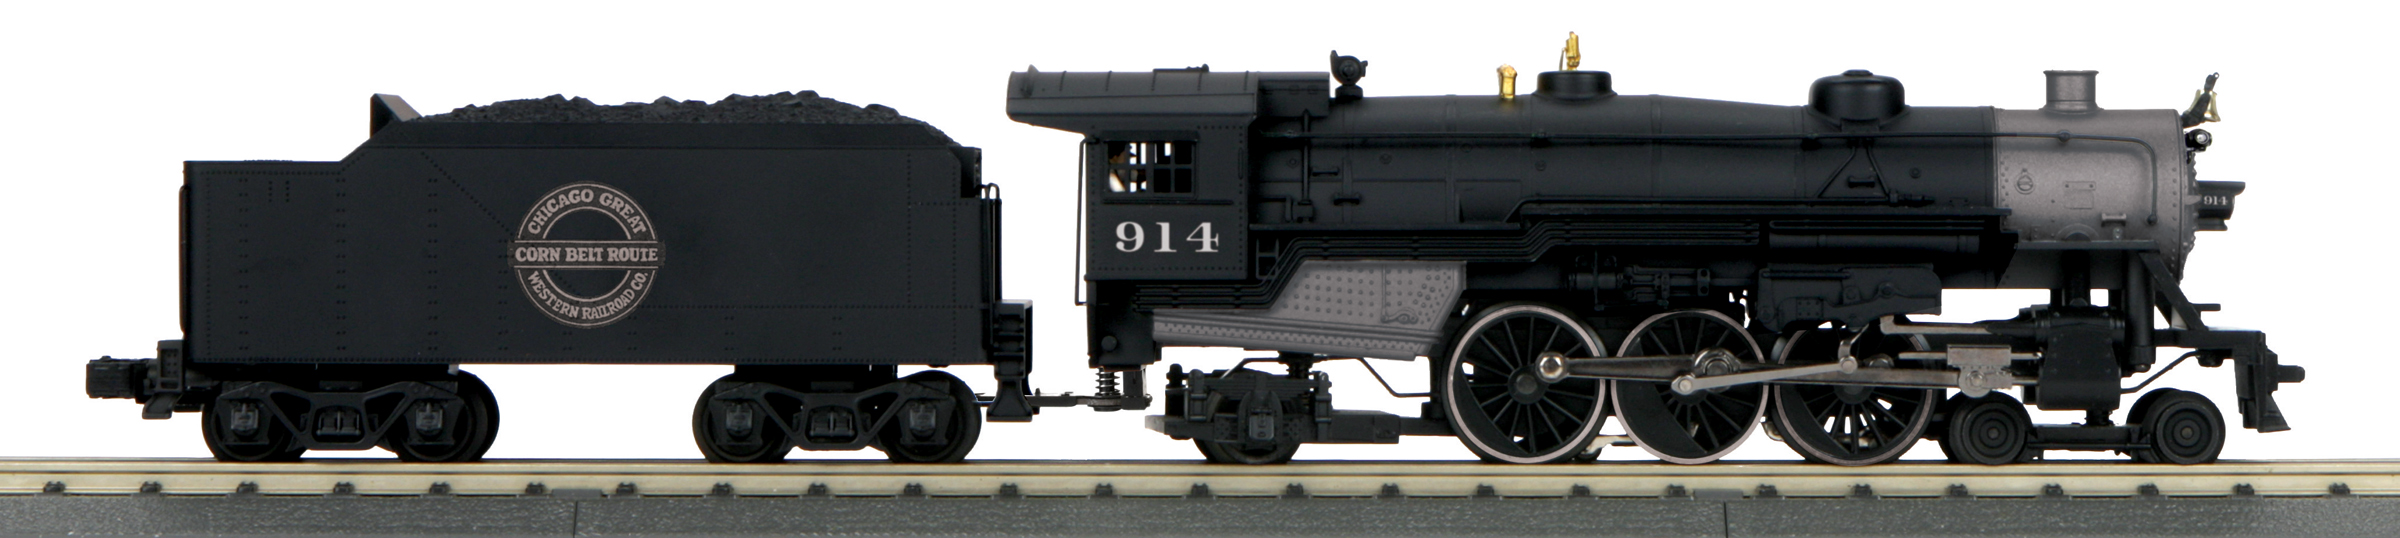 MTH 30-1824-1 4-6-2 Pacific Proto Sound 3.0 Imperial Chicago Great Western 914